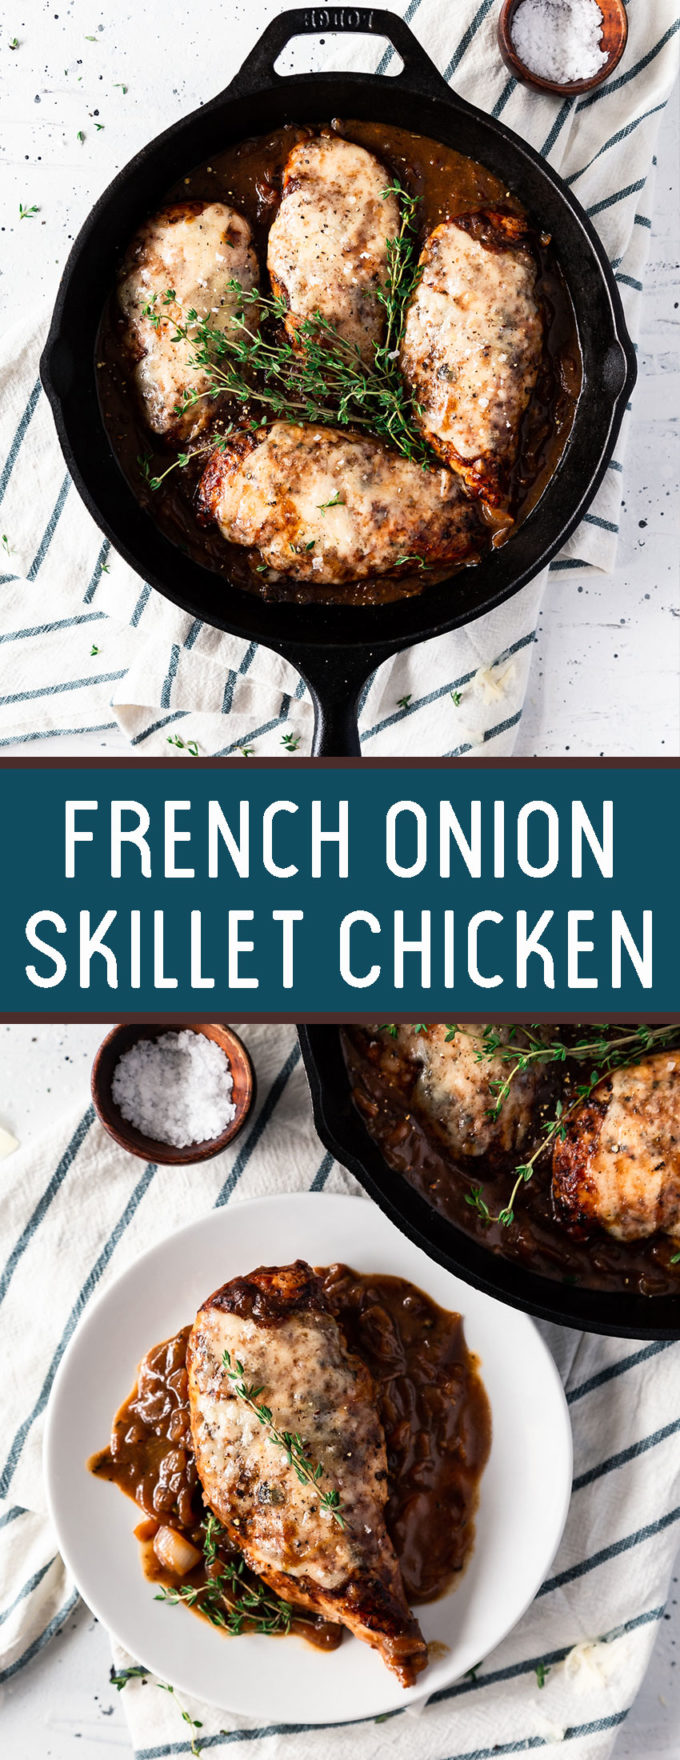 Delicious and easy to make French onion skillet chicken